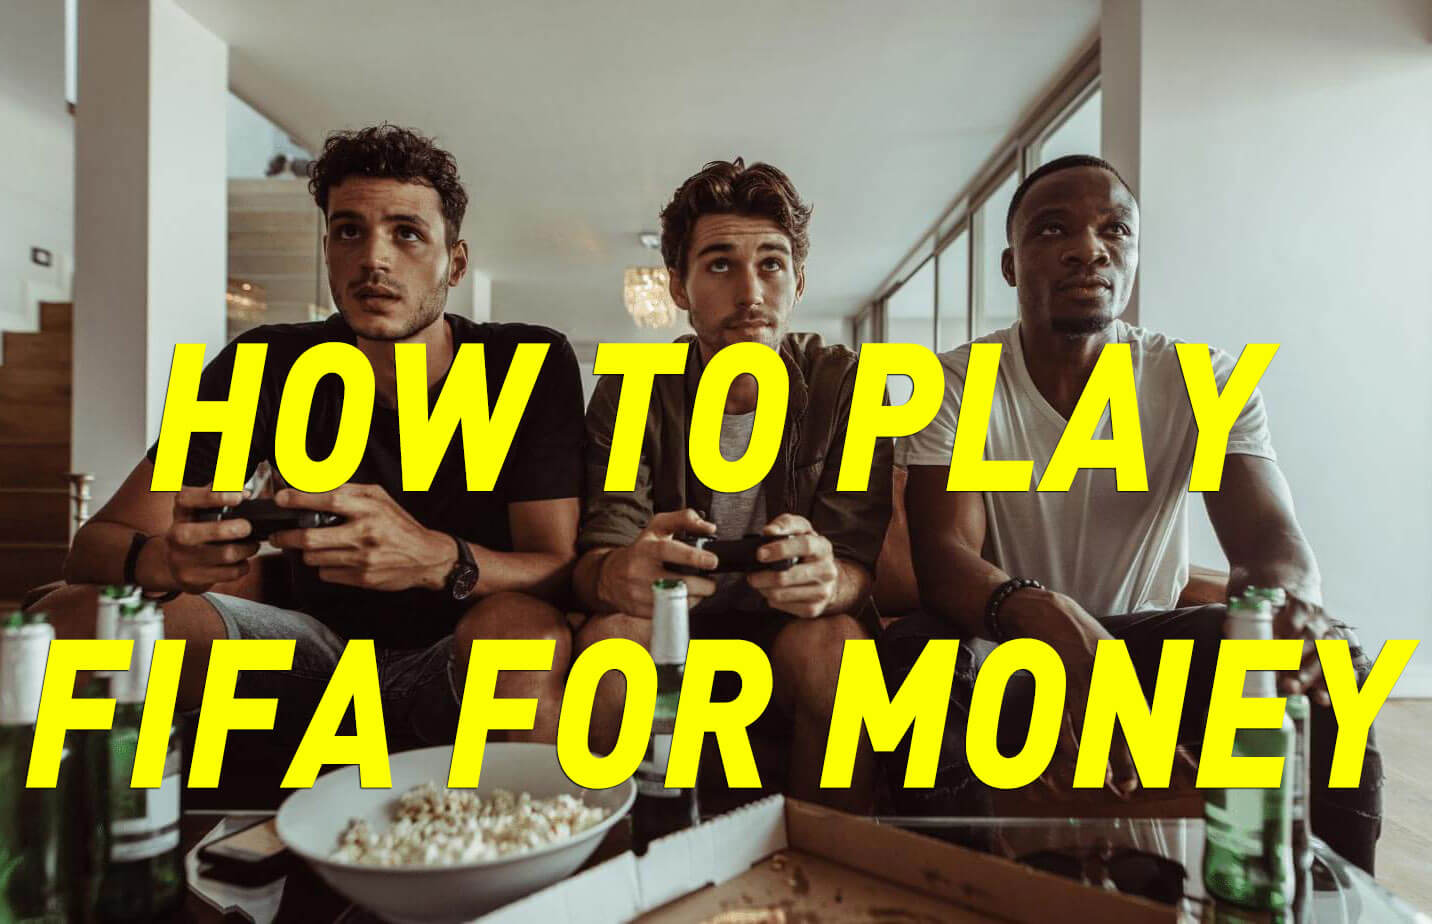 How-to-Play-FIFA-for-Money-Online.jpg